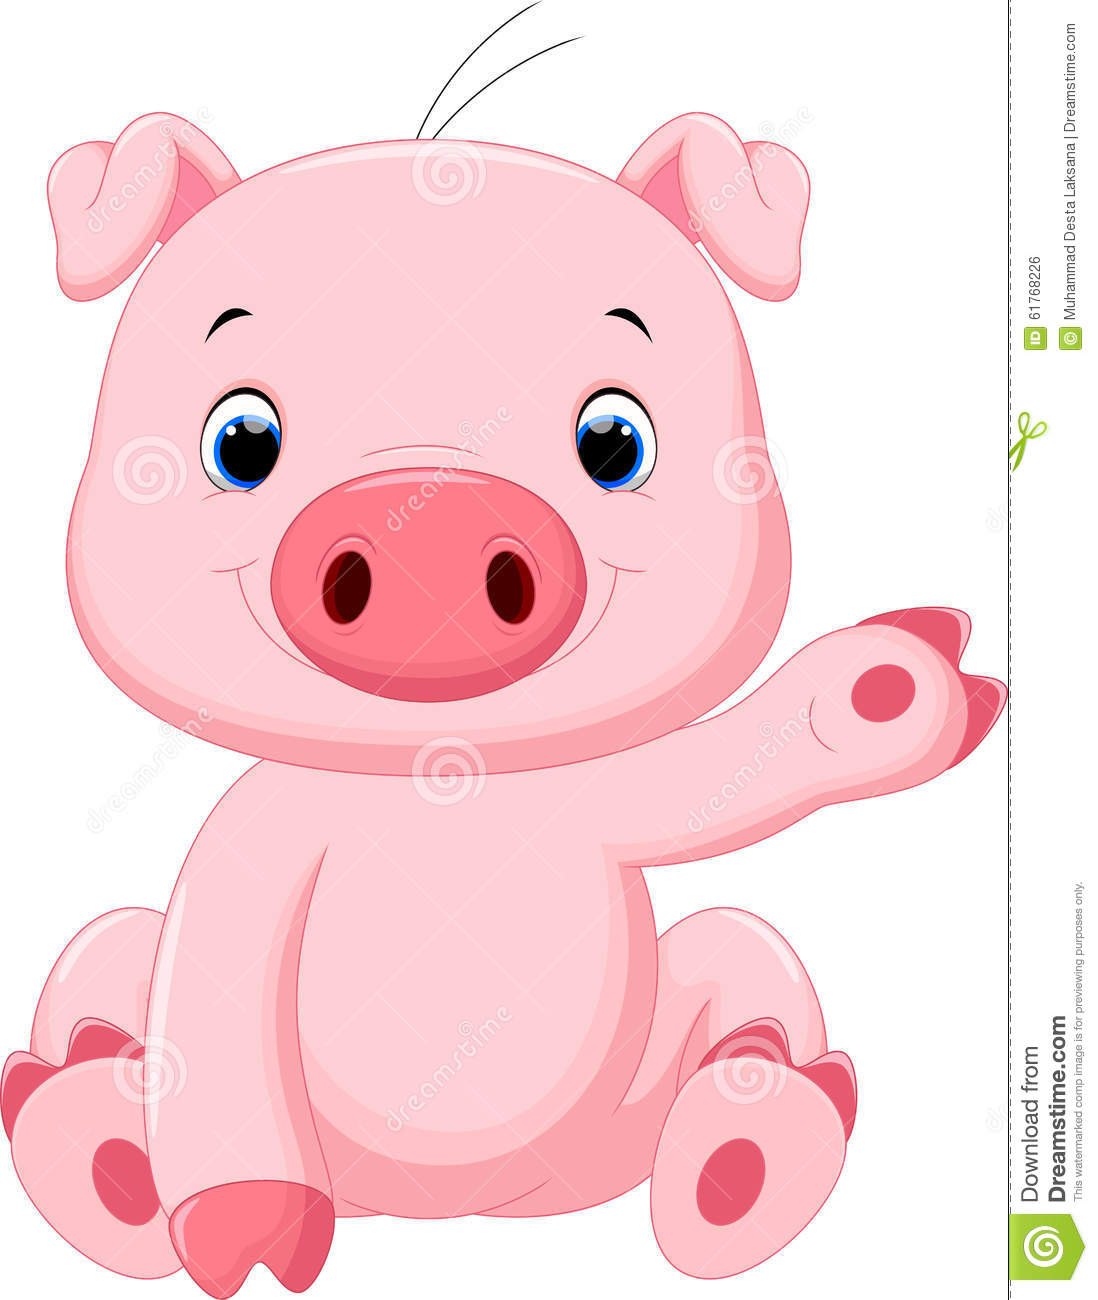 Stock Illustration Cute Baby Pig Cartoon Vector Illustration Image6176...